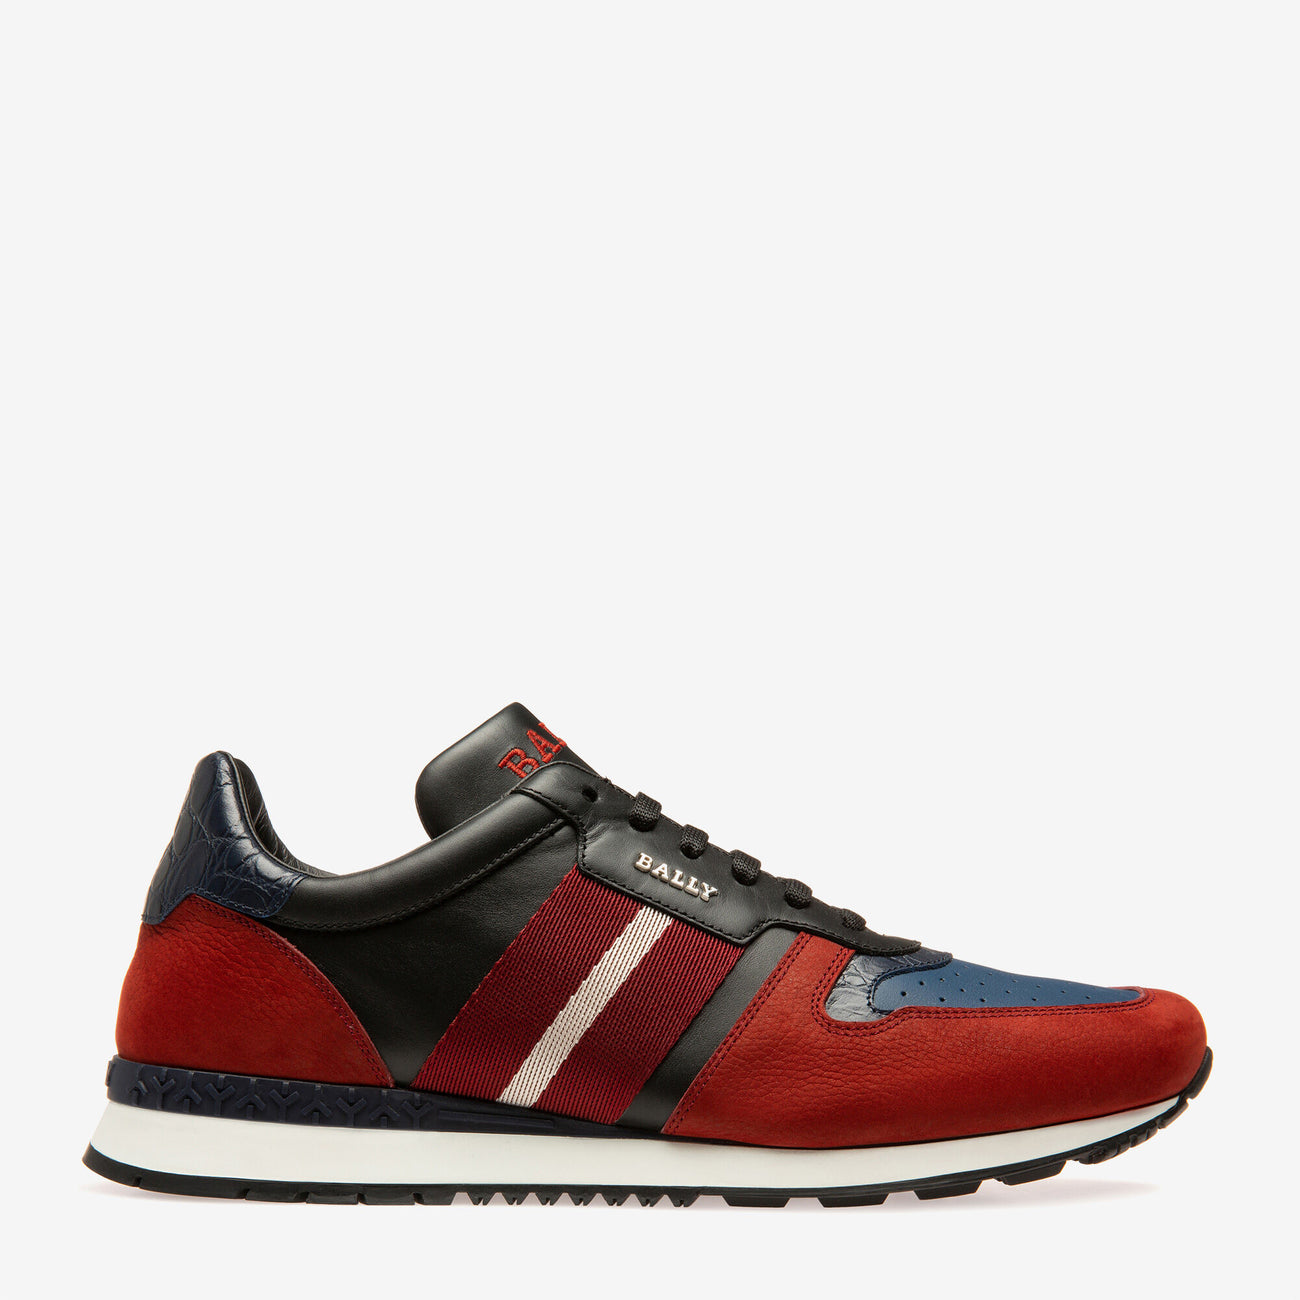 BALLY Asel Sneaker | Red - Capsule NYC